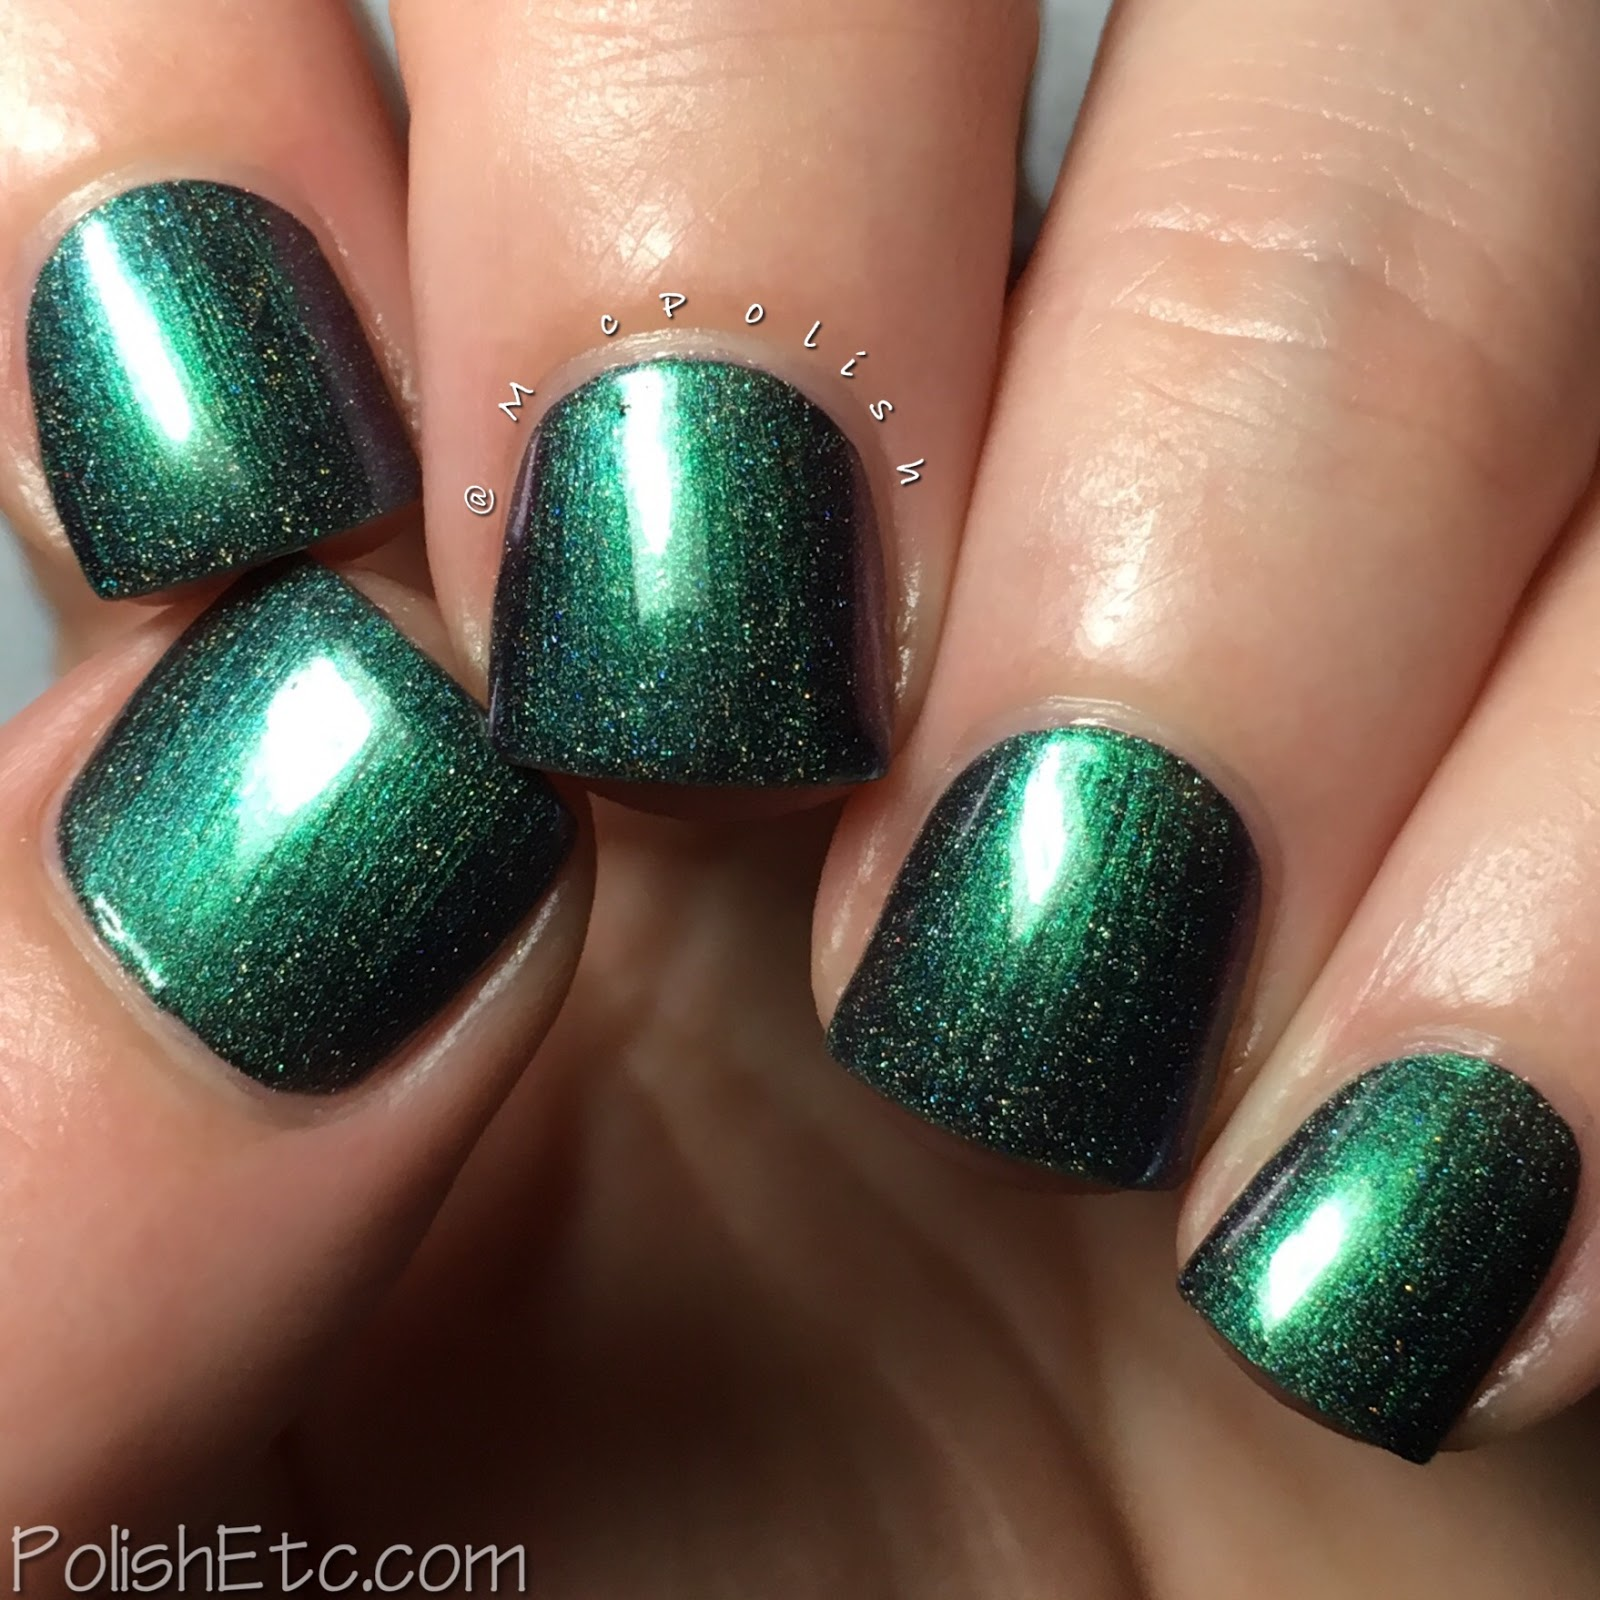 Takko Lacquer - Dreamcatcher - McPolish